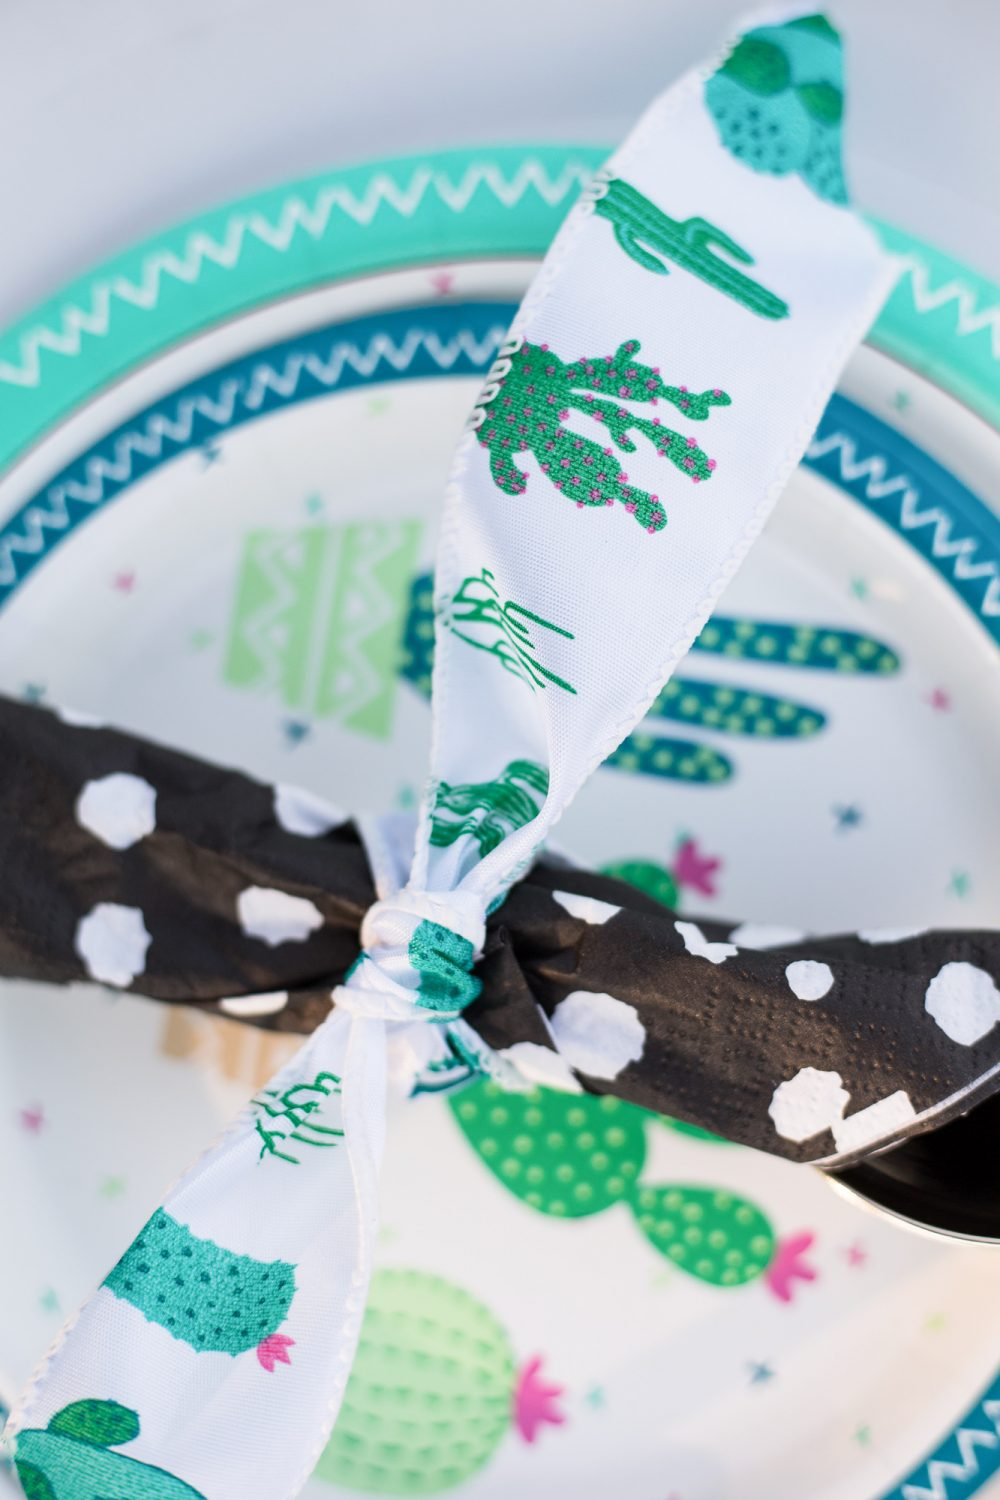 Adorable cactus party decor with black and white accents! This is a cute take on a tea party for two!